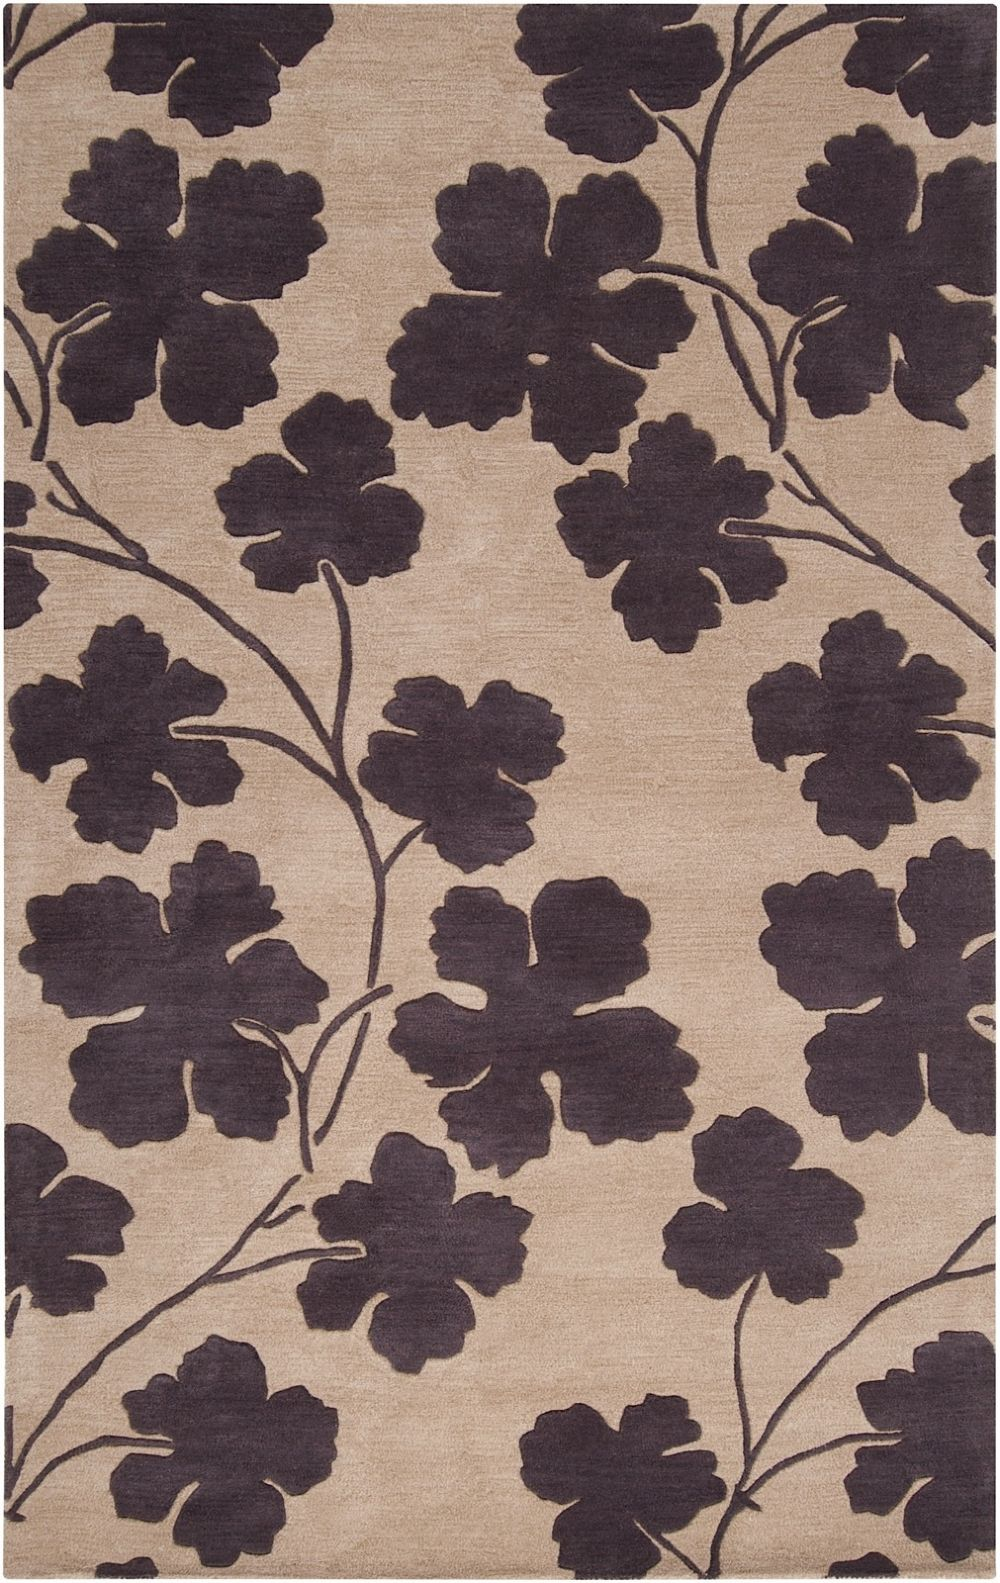 surya paule marrot country & floral area rug collection